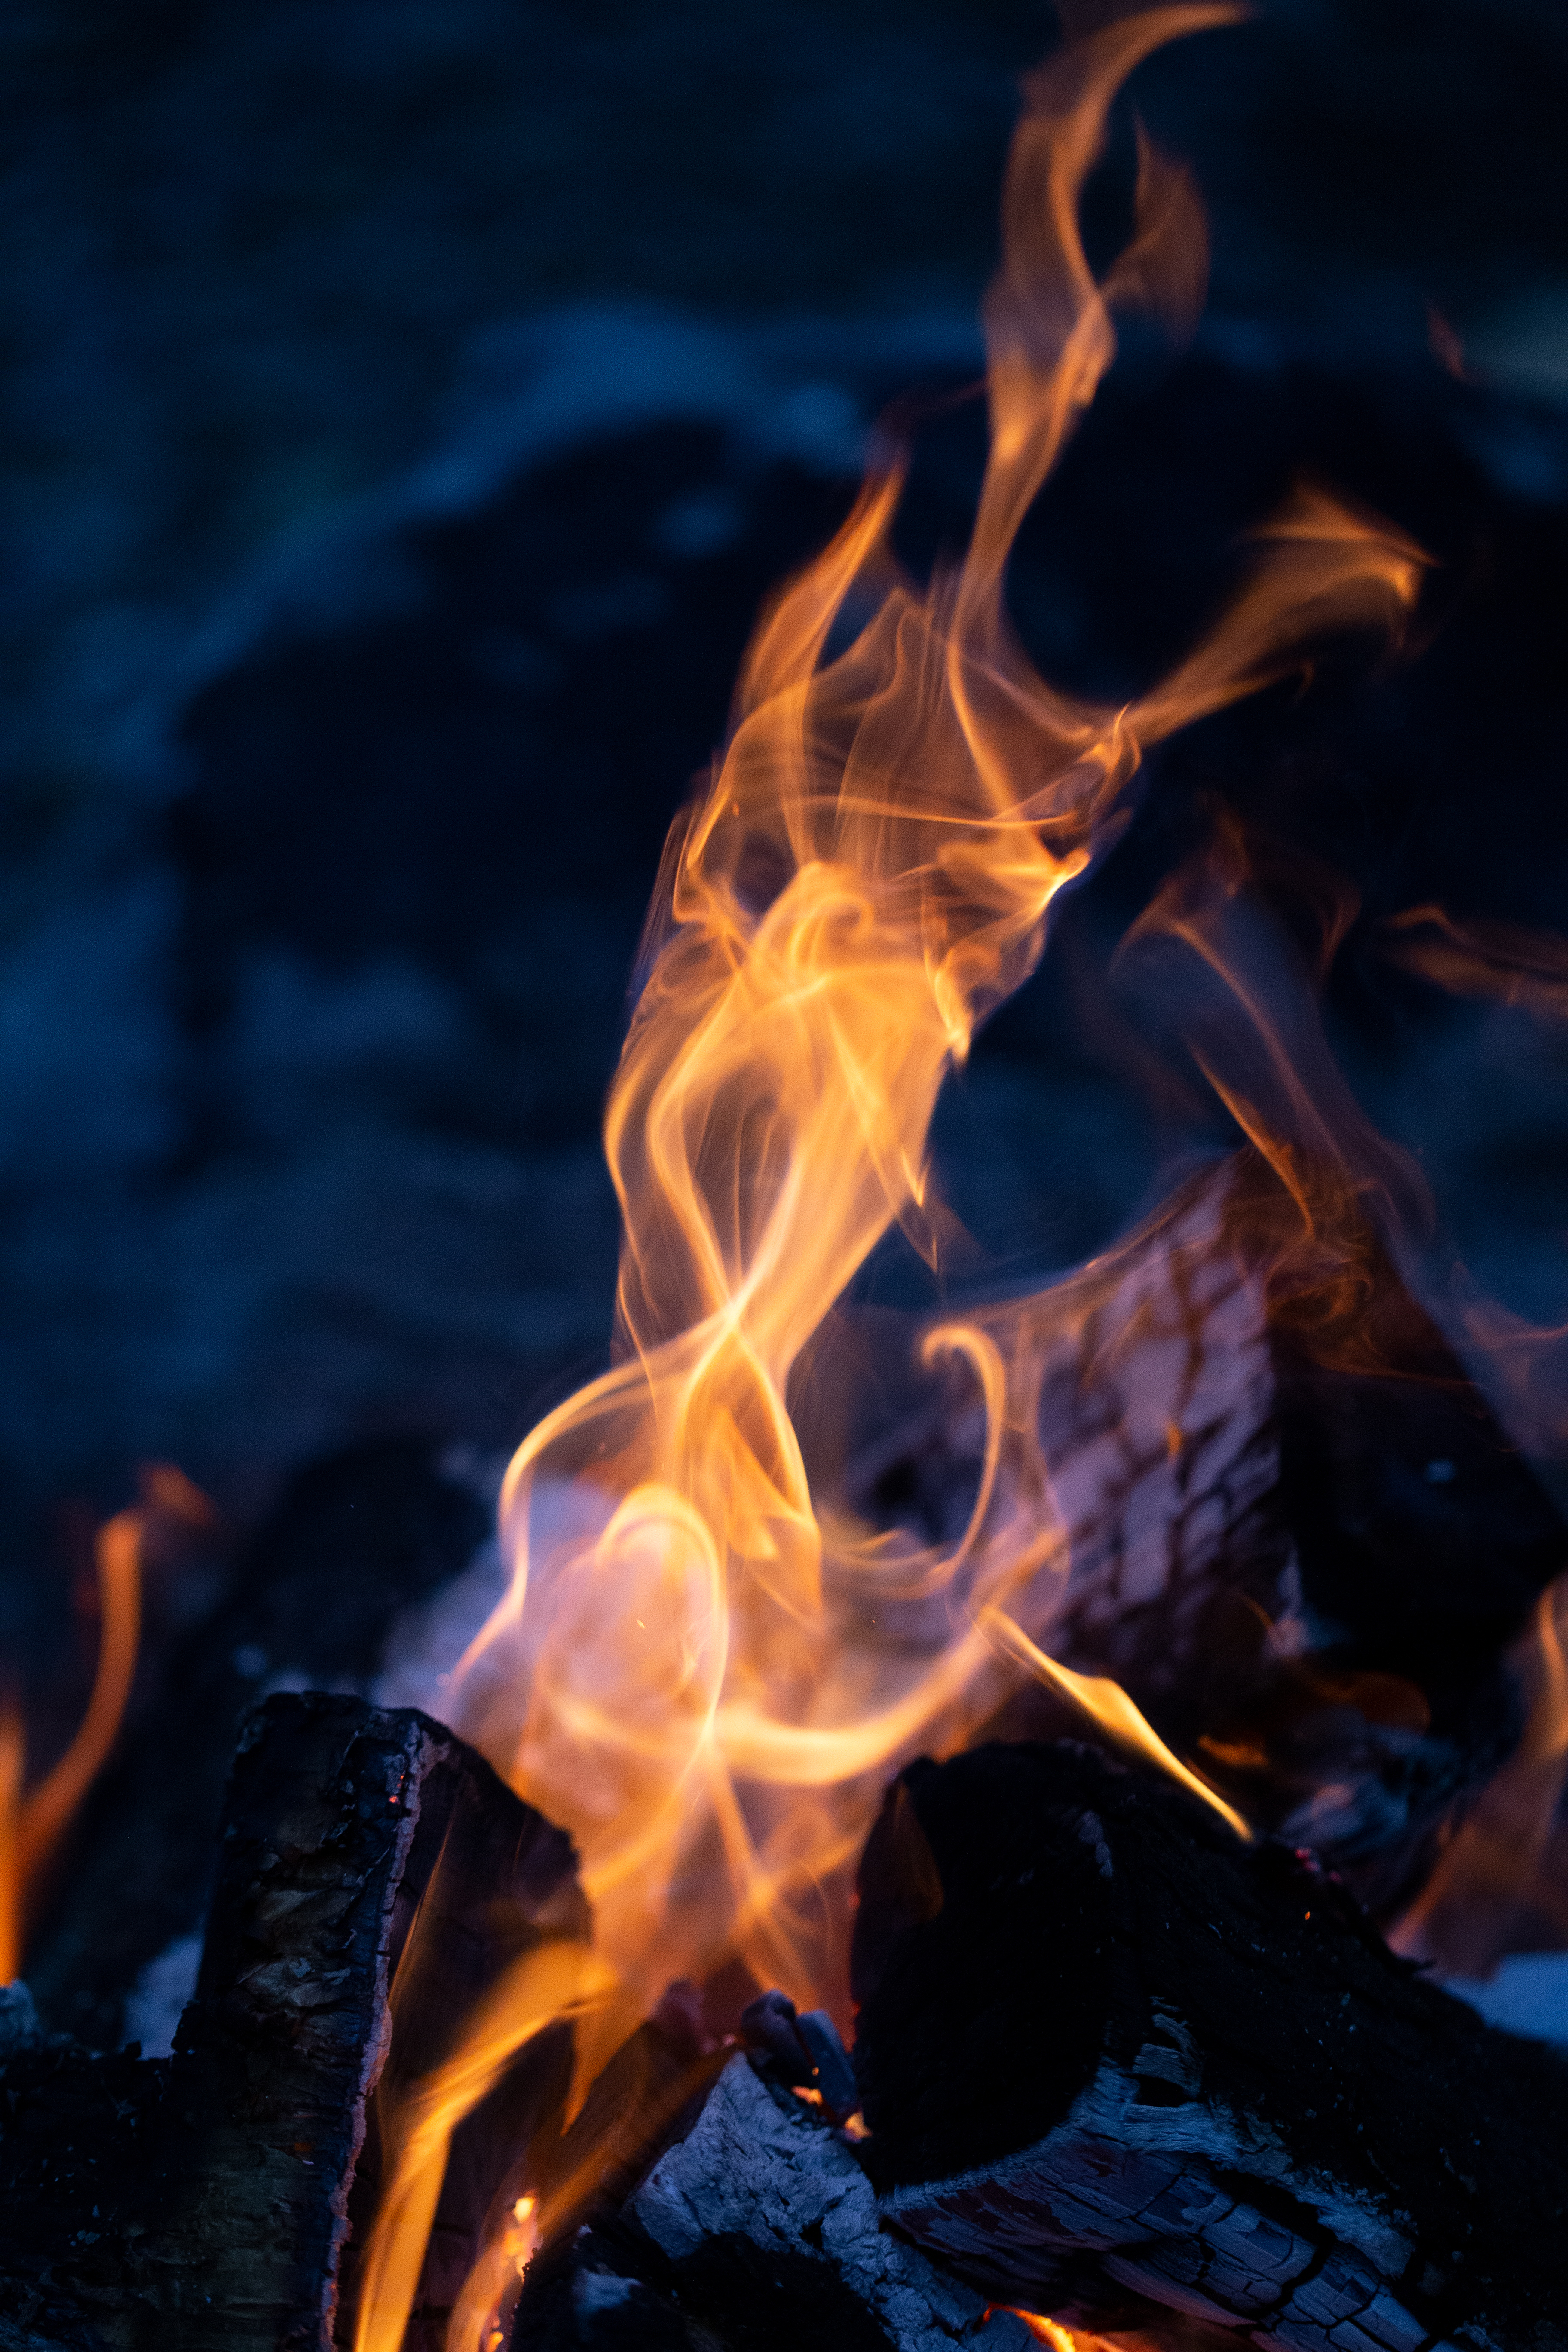 143291 Screensavers and Wallpapers Bonfire for phone. Download Fire, Bonfire, Coals, Miscellanea, Miscellaneous, Firewood, To Burn, Burn pictures for free